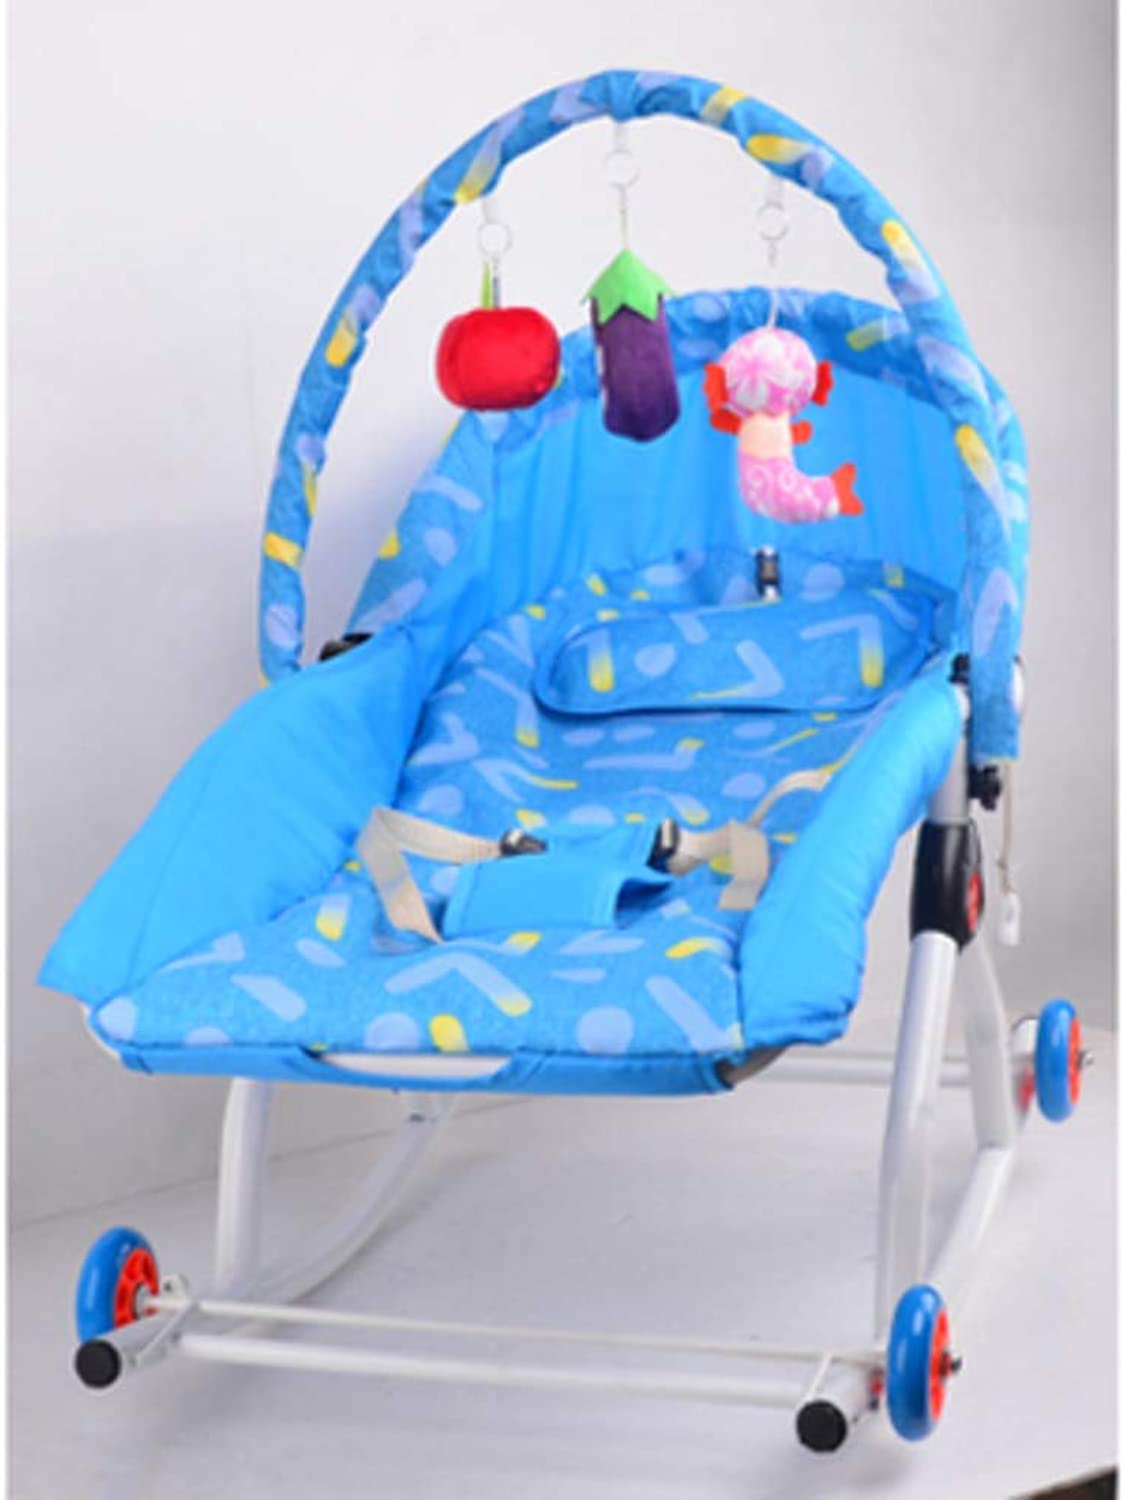 Baby Rocking Chair with Wheel,Comfort Chair for Baby Cradle Recliner Multi-Functional Baby Chair Toddler Rocker-E